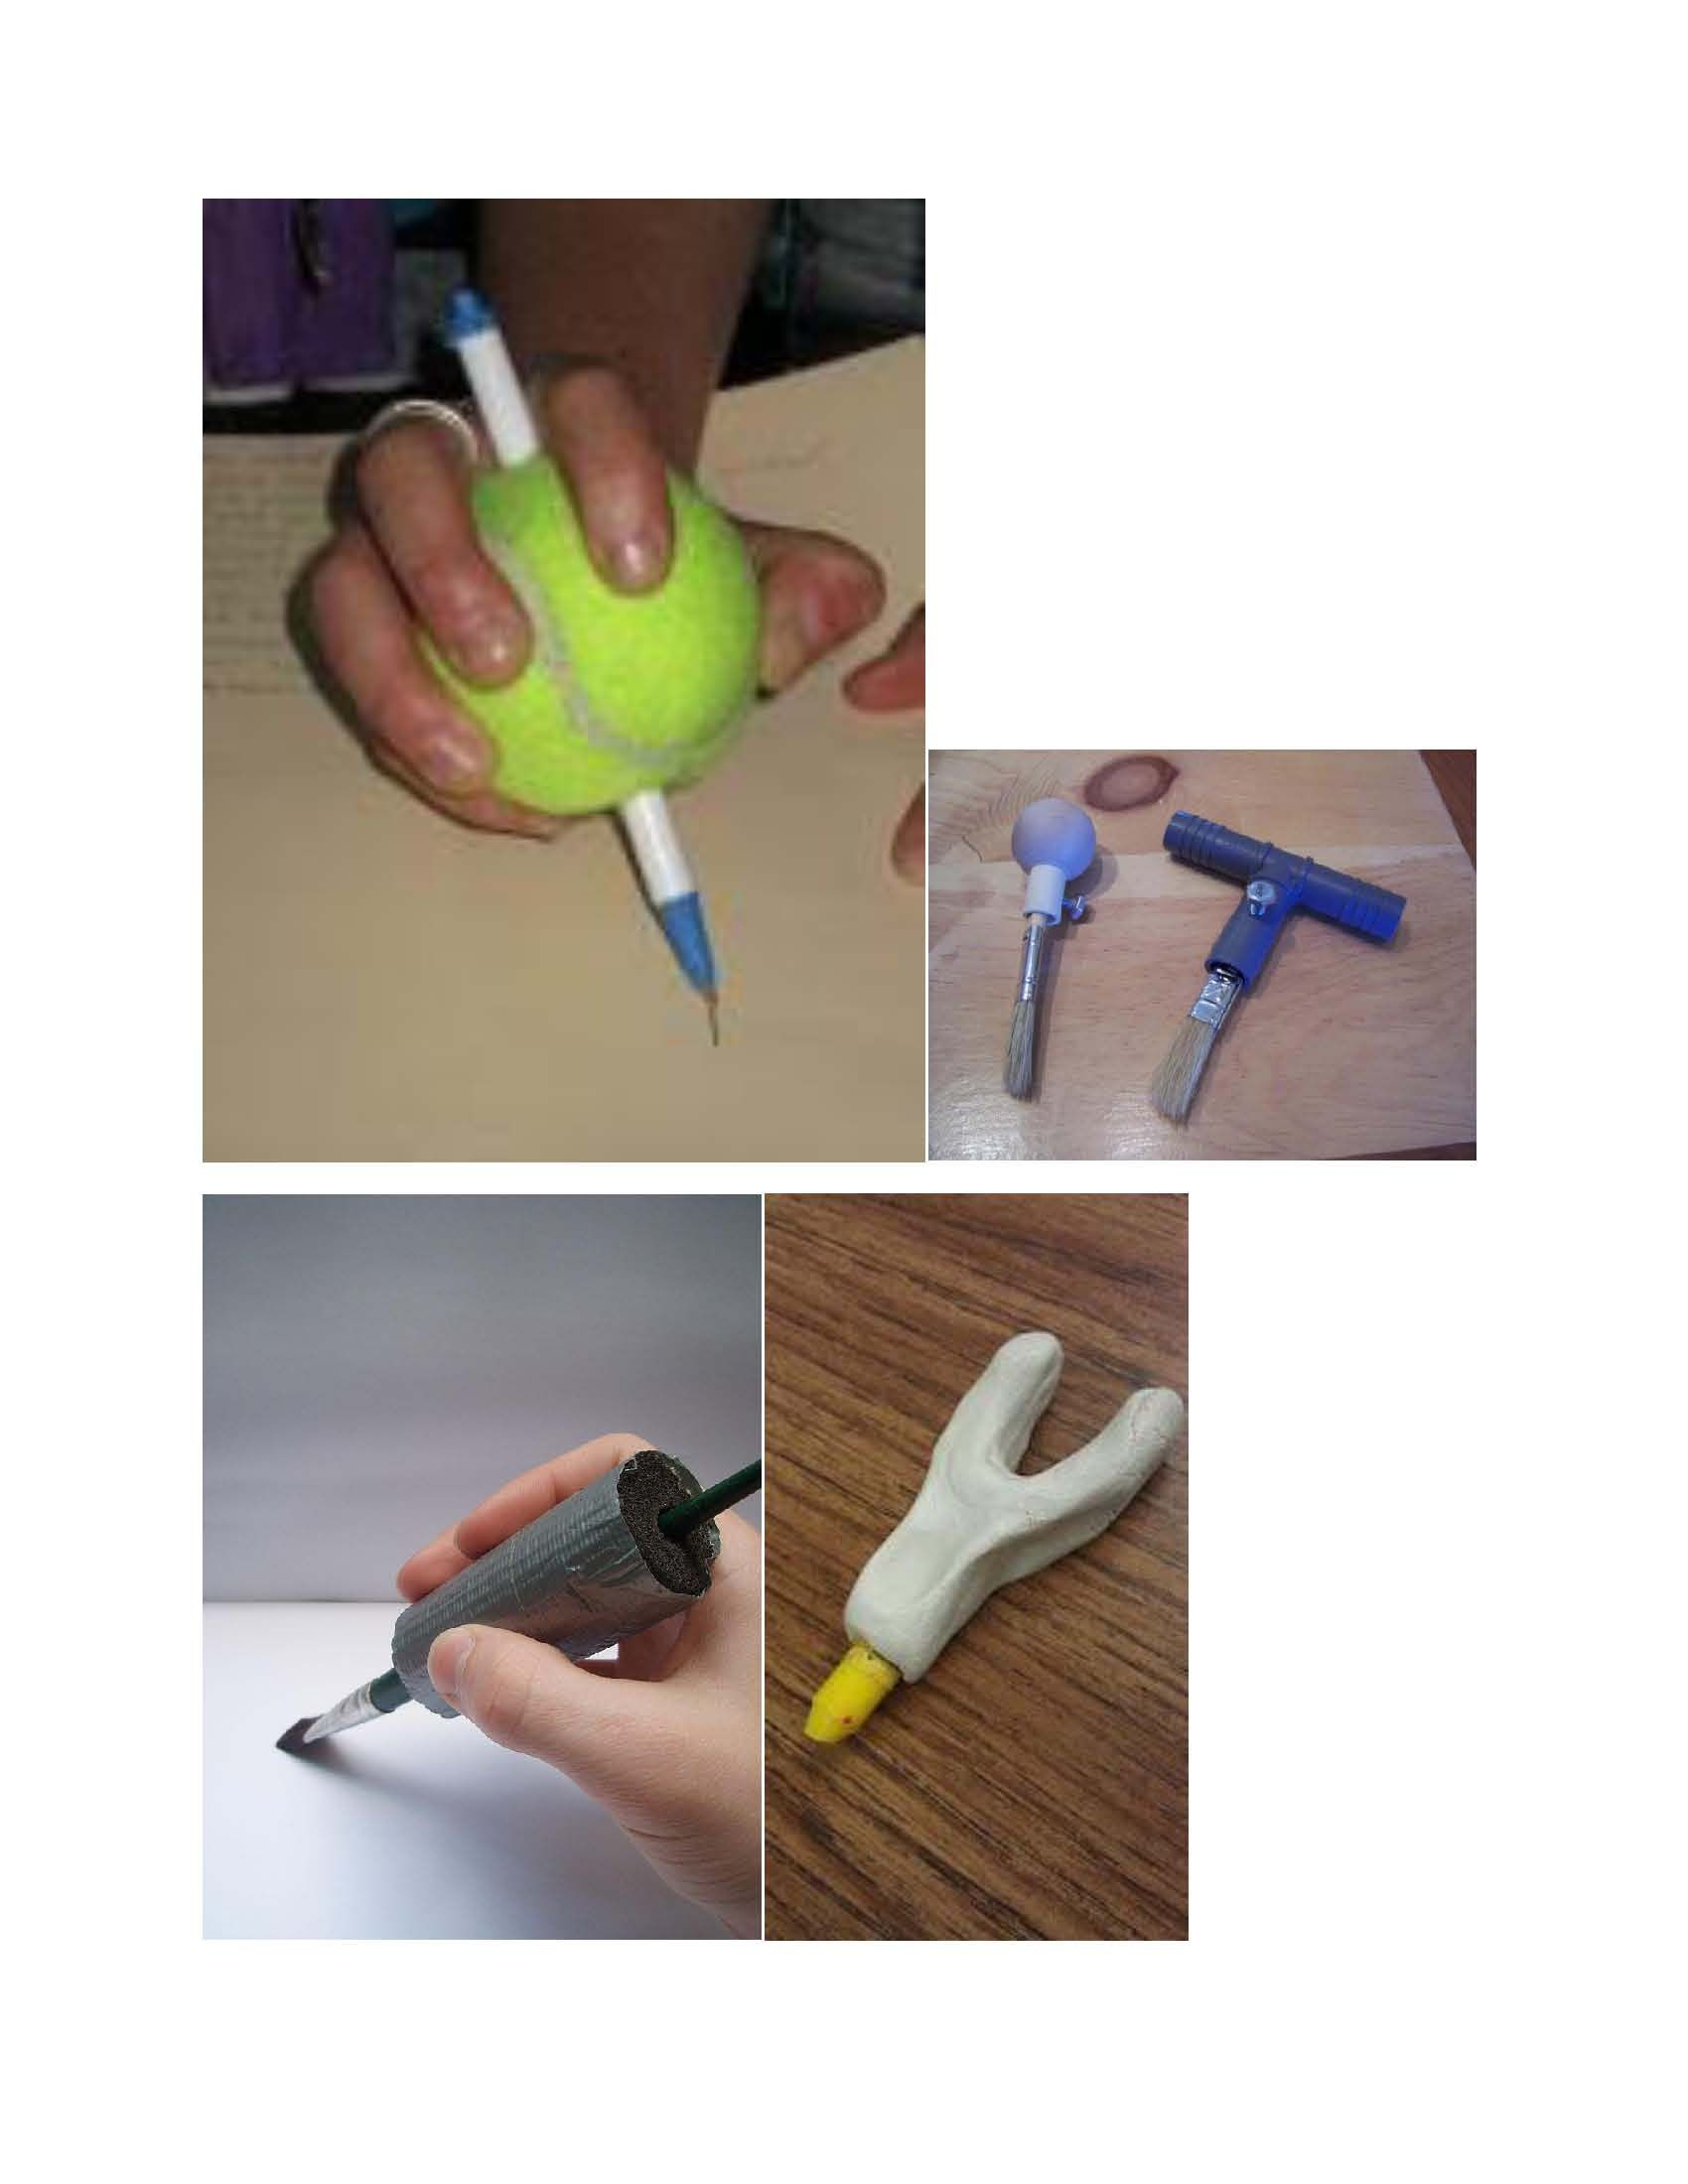 These Are Different Adaptations To Writing Utensils So Individuals With Fine Motor Impairments